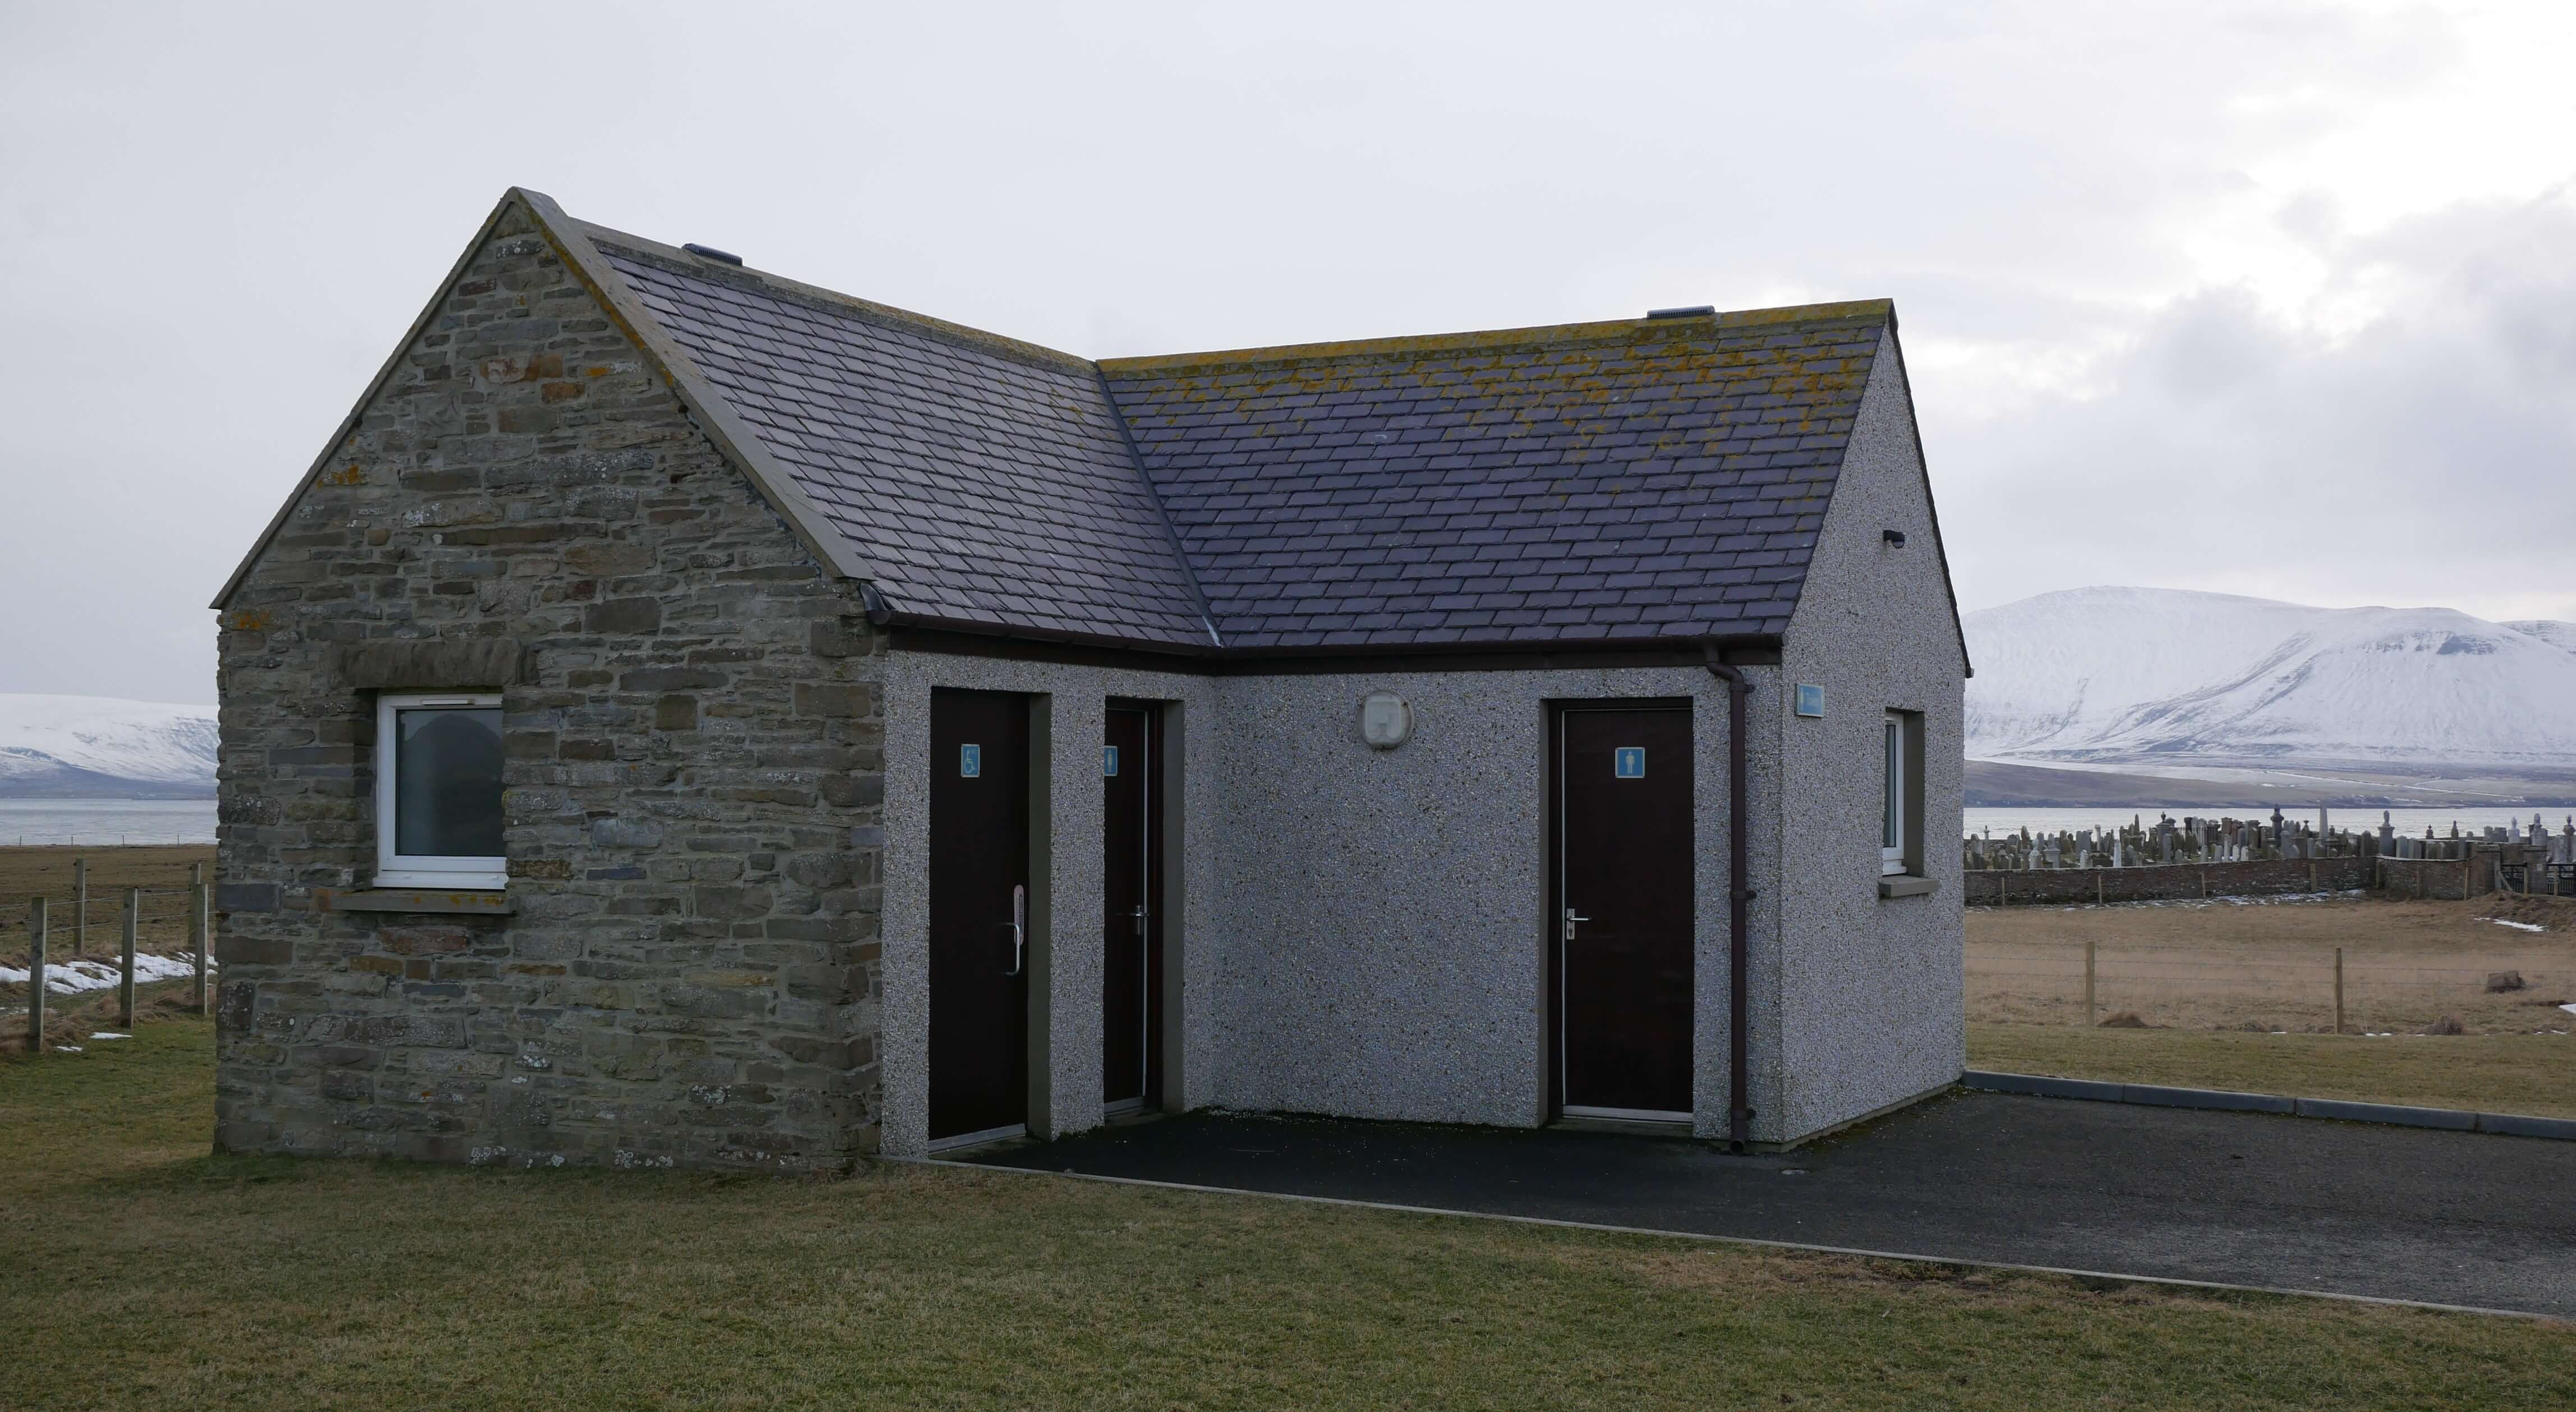 Public toilet at Warbeth Cemetery, Stromness, Orkney